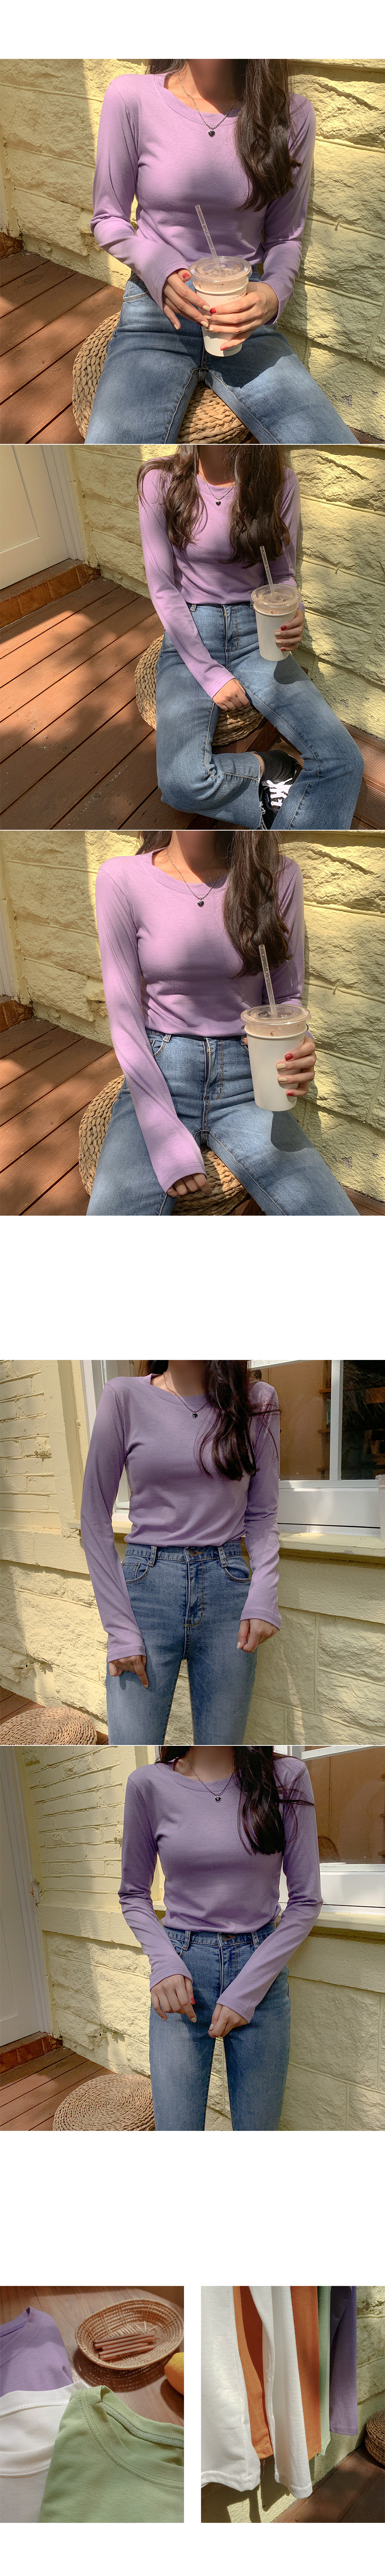 1+1 Special Product US Round Long Sleeve Tee